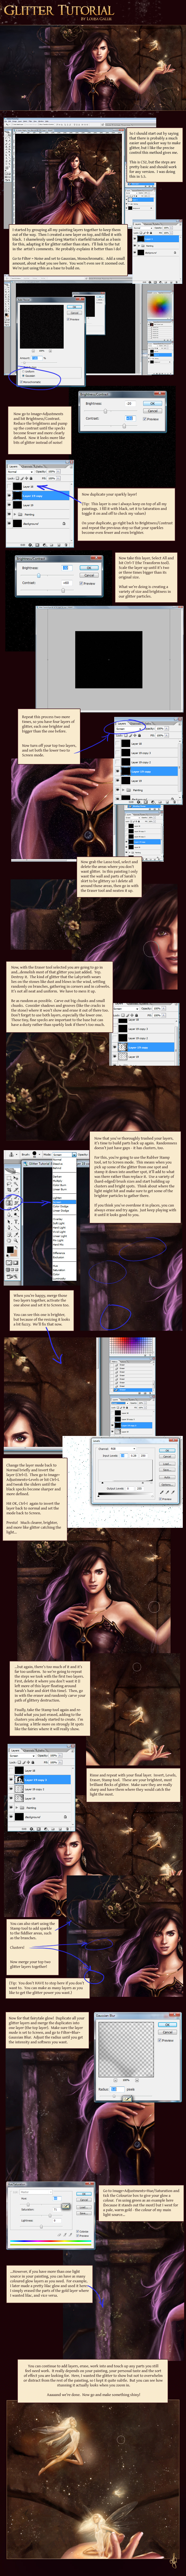 Use Photoshop to add glitter and stardust effects to your artwork, in true Labyrinth & Dark Crystal style! | louisagallie.com